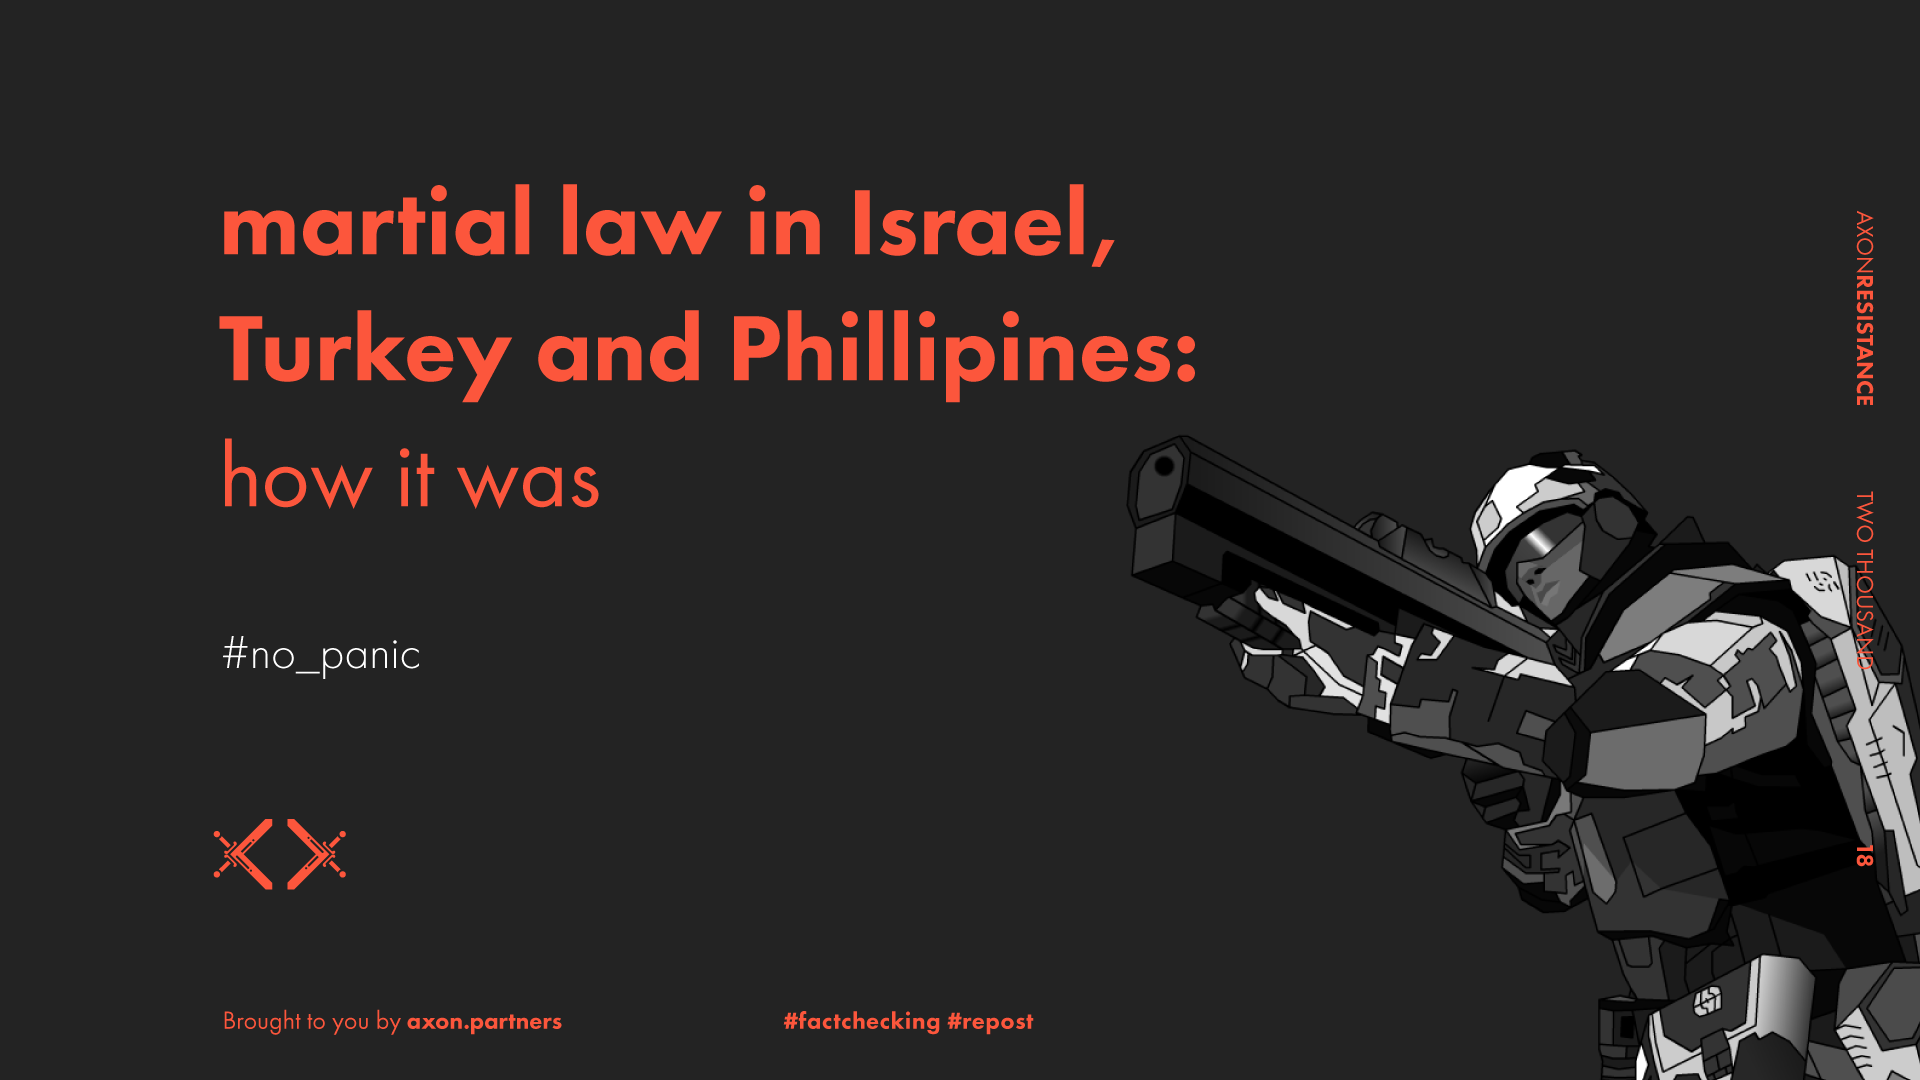 martial law in Israel, Turkey and Philippines